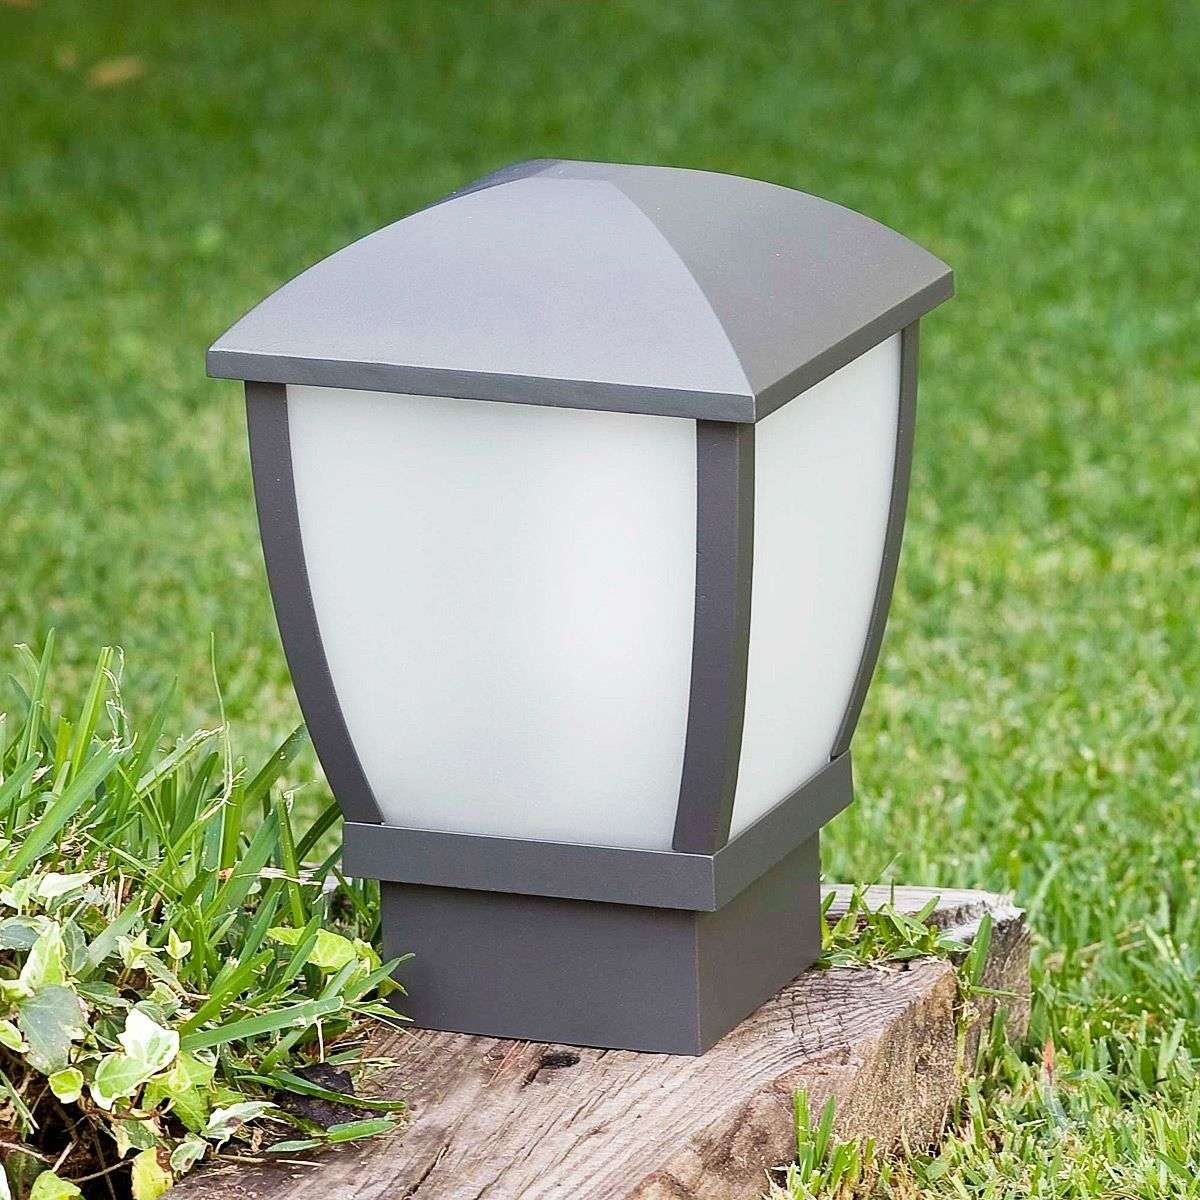 Luminaire pour socle moderne Wilma-3505301-31